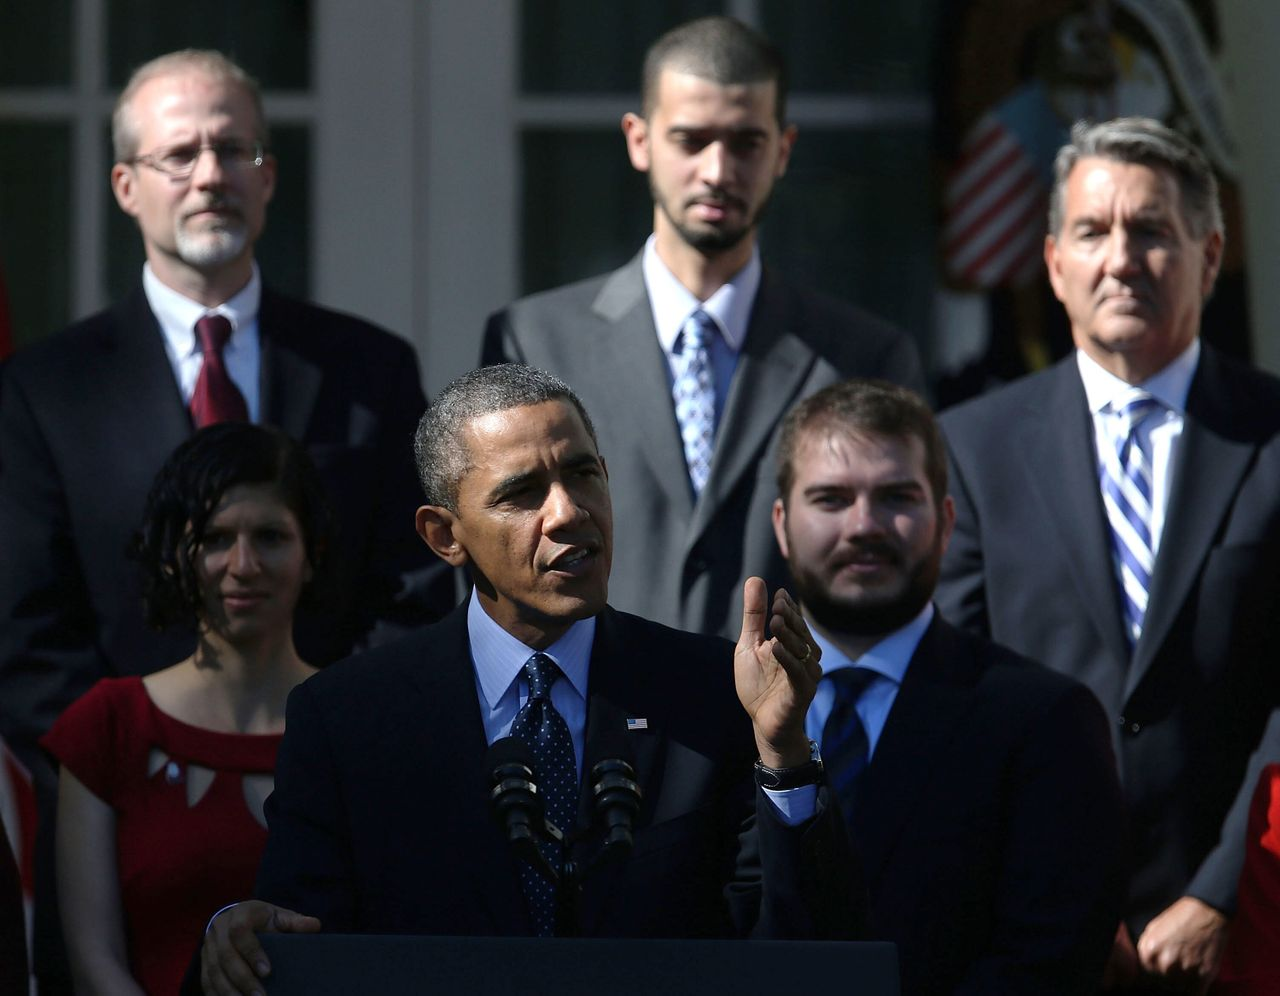 """<div class=""""feature-caption""""><em>President Obama delivers remarks about the error-plagued launch of Healthcare.gov in the Rose Garden. (Photo: Mark Wilson/Getty Images)</em></div>"""